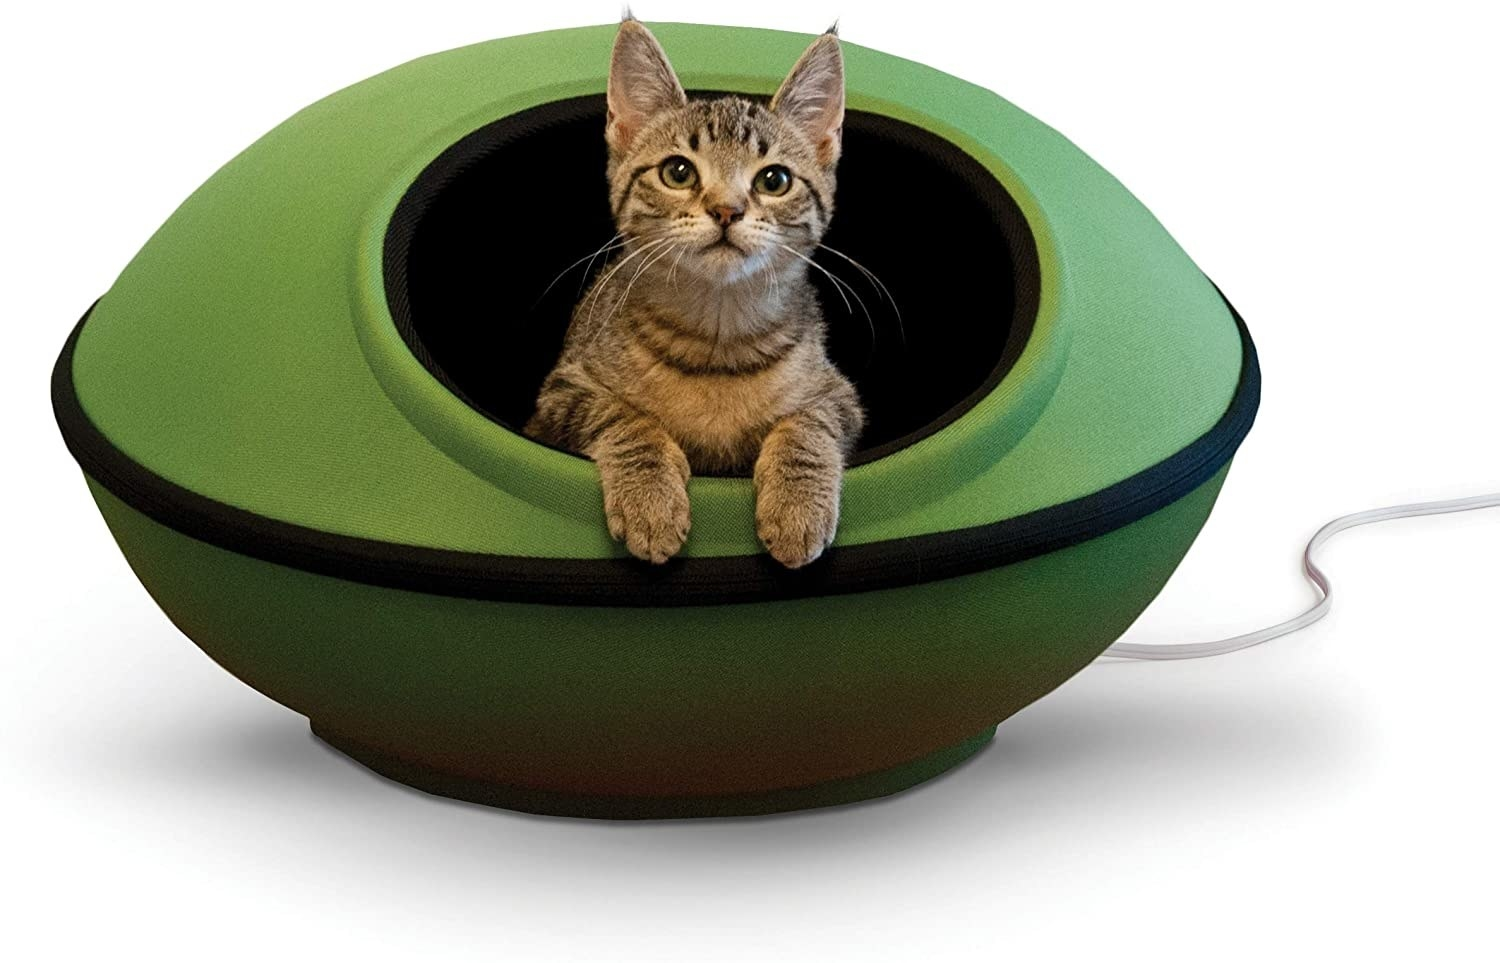 a green heated bed